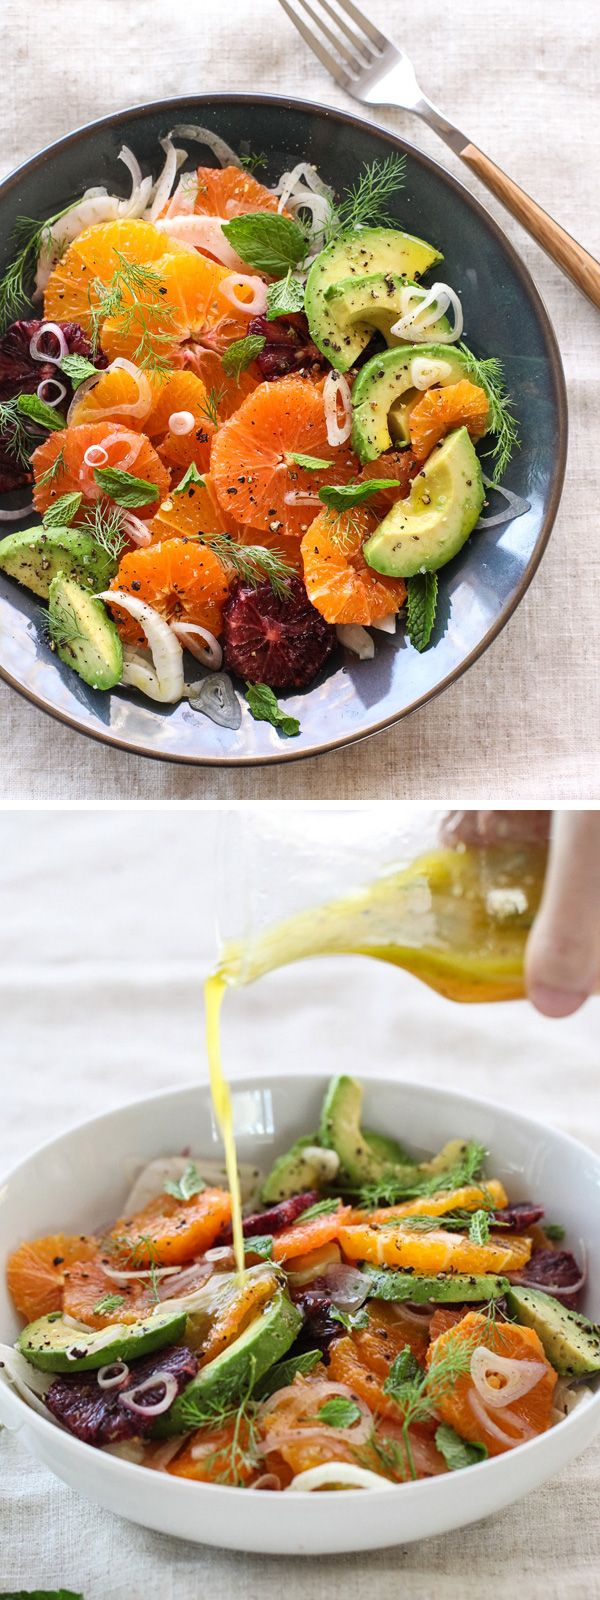 A favorite salad that goes from fall to spring with fresh citrus and avocado and champagne vinegar dressing